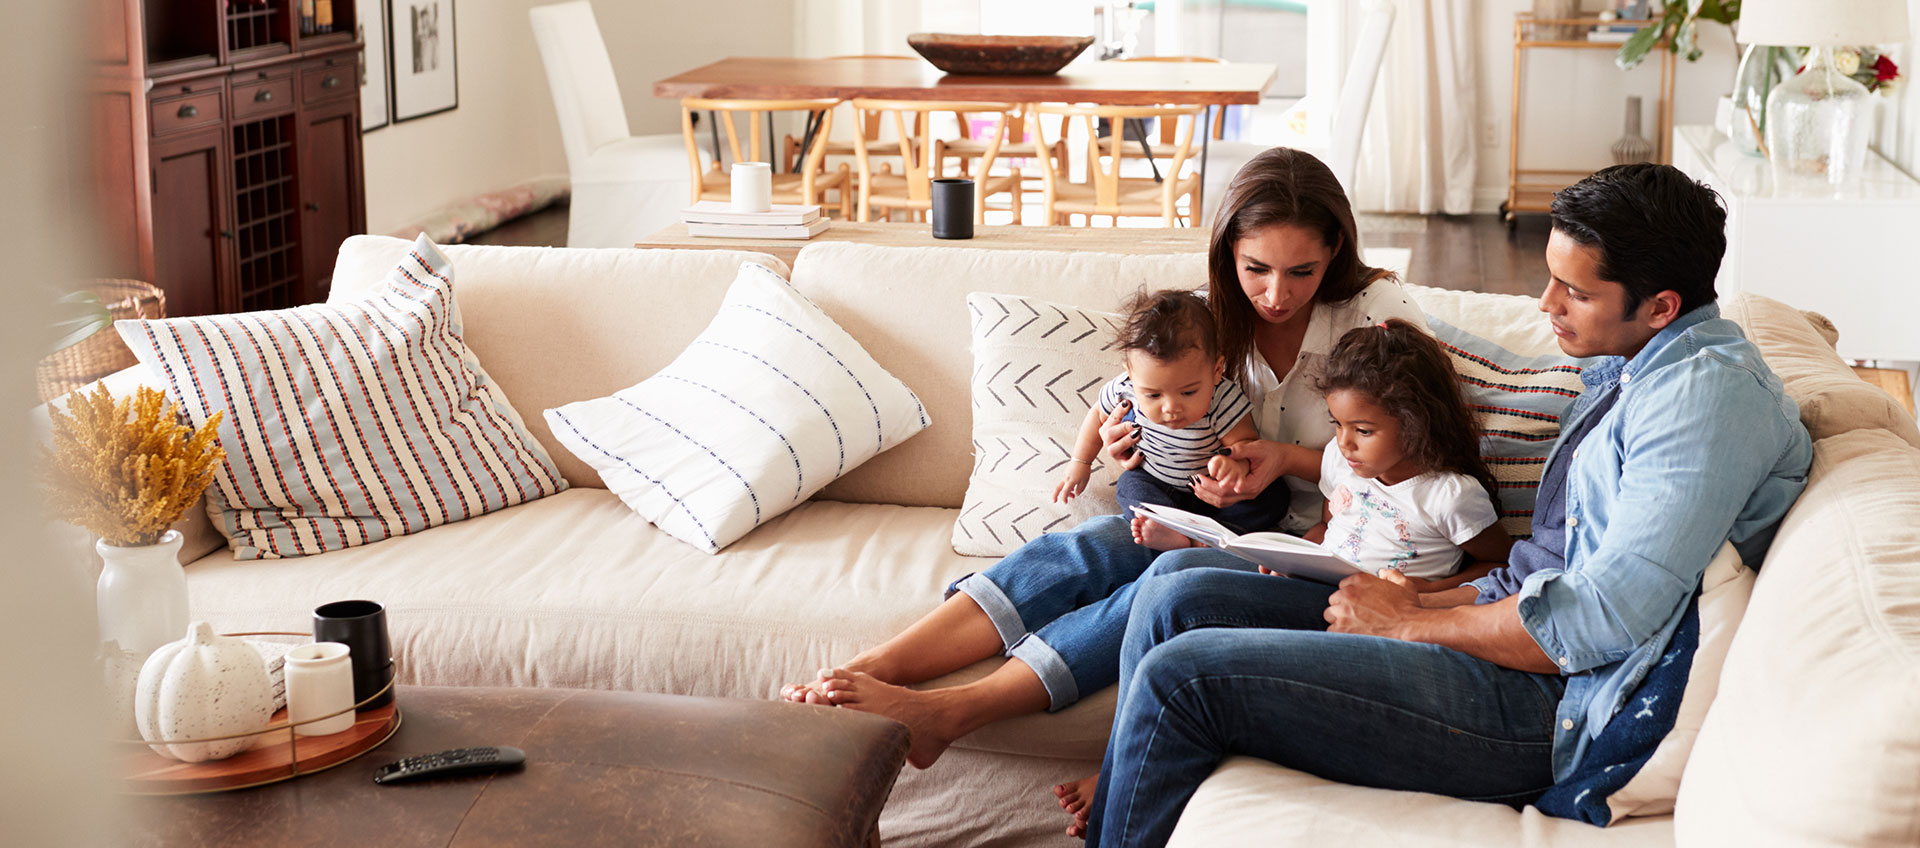 Photo of hispanic family spending time together on the couch